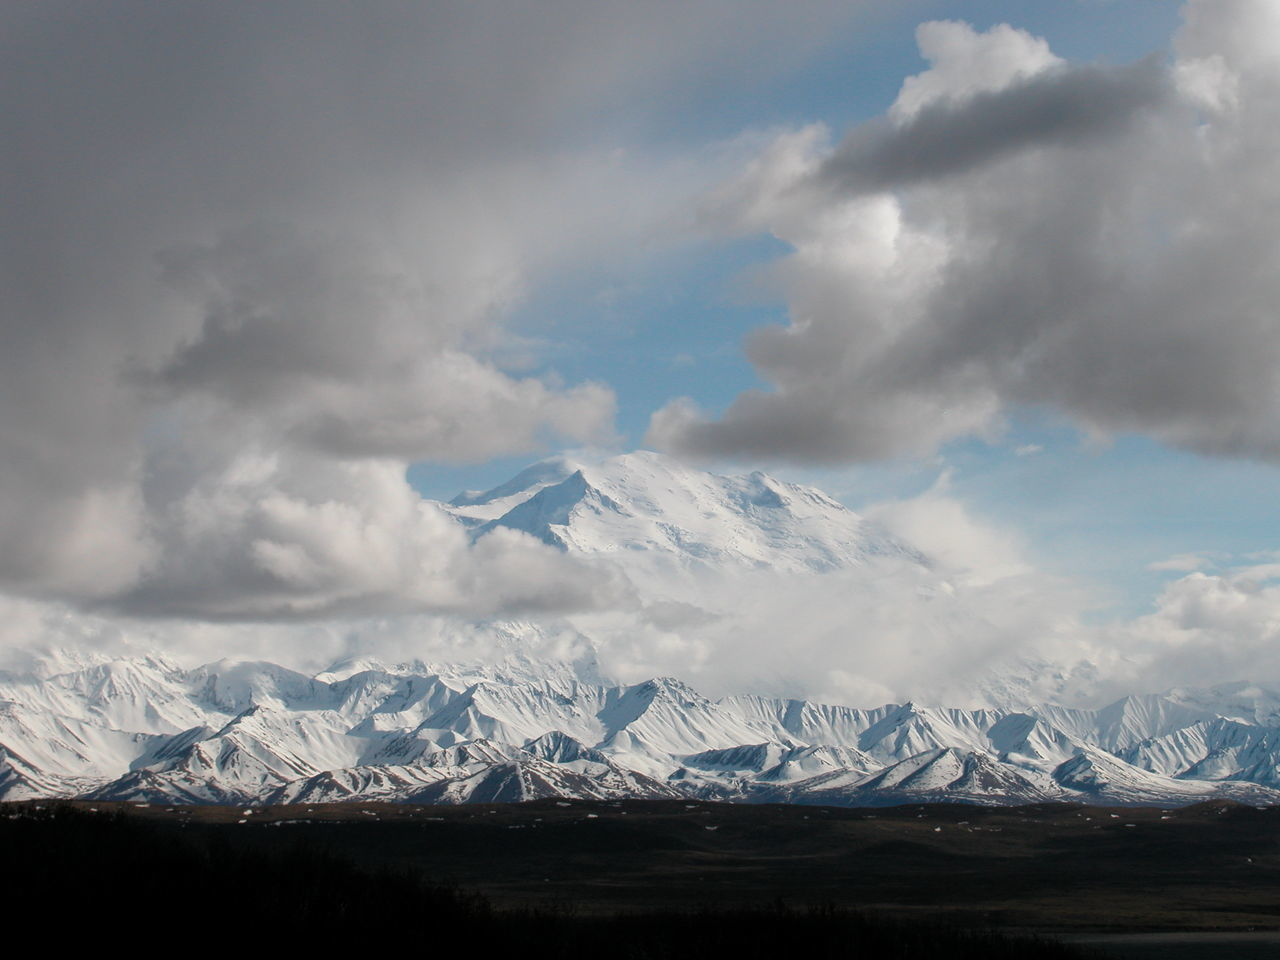 Alaska Beauty In Nature Cloud - Sky Cold Temperature Day Denali Denali National Park Landscape Mountain Mountain Peak Mountain Range Mt Denali Mt McKinley Nature No People Outdoors Scenics Sky Snow Snowcapped Mountain Winter